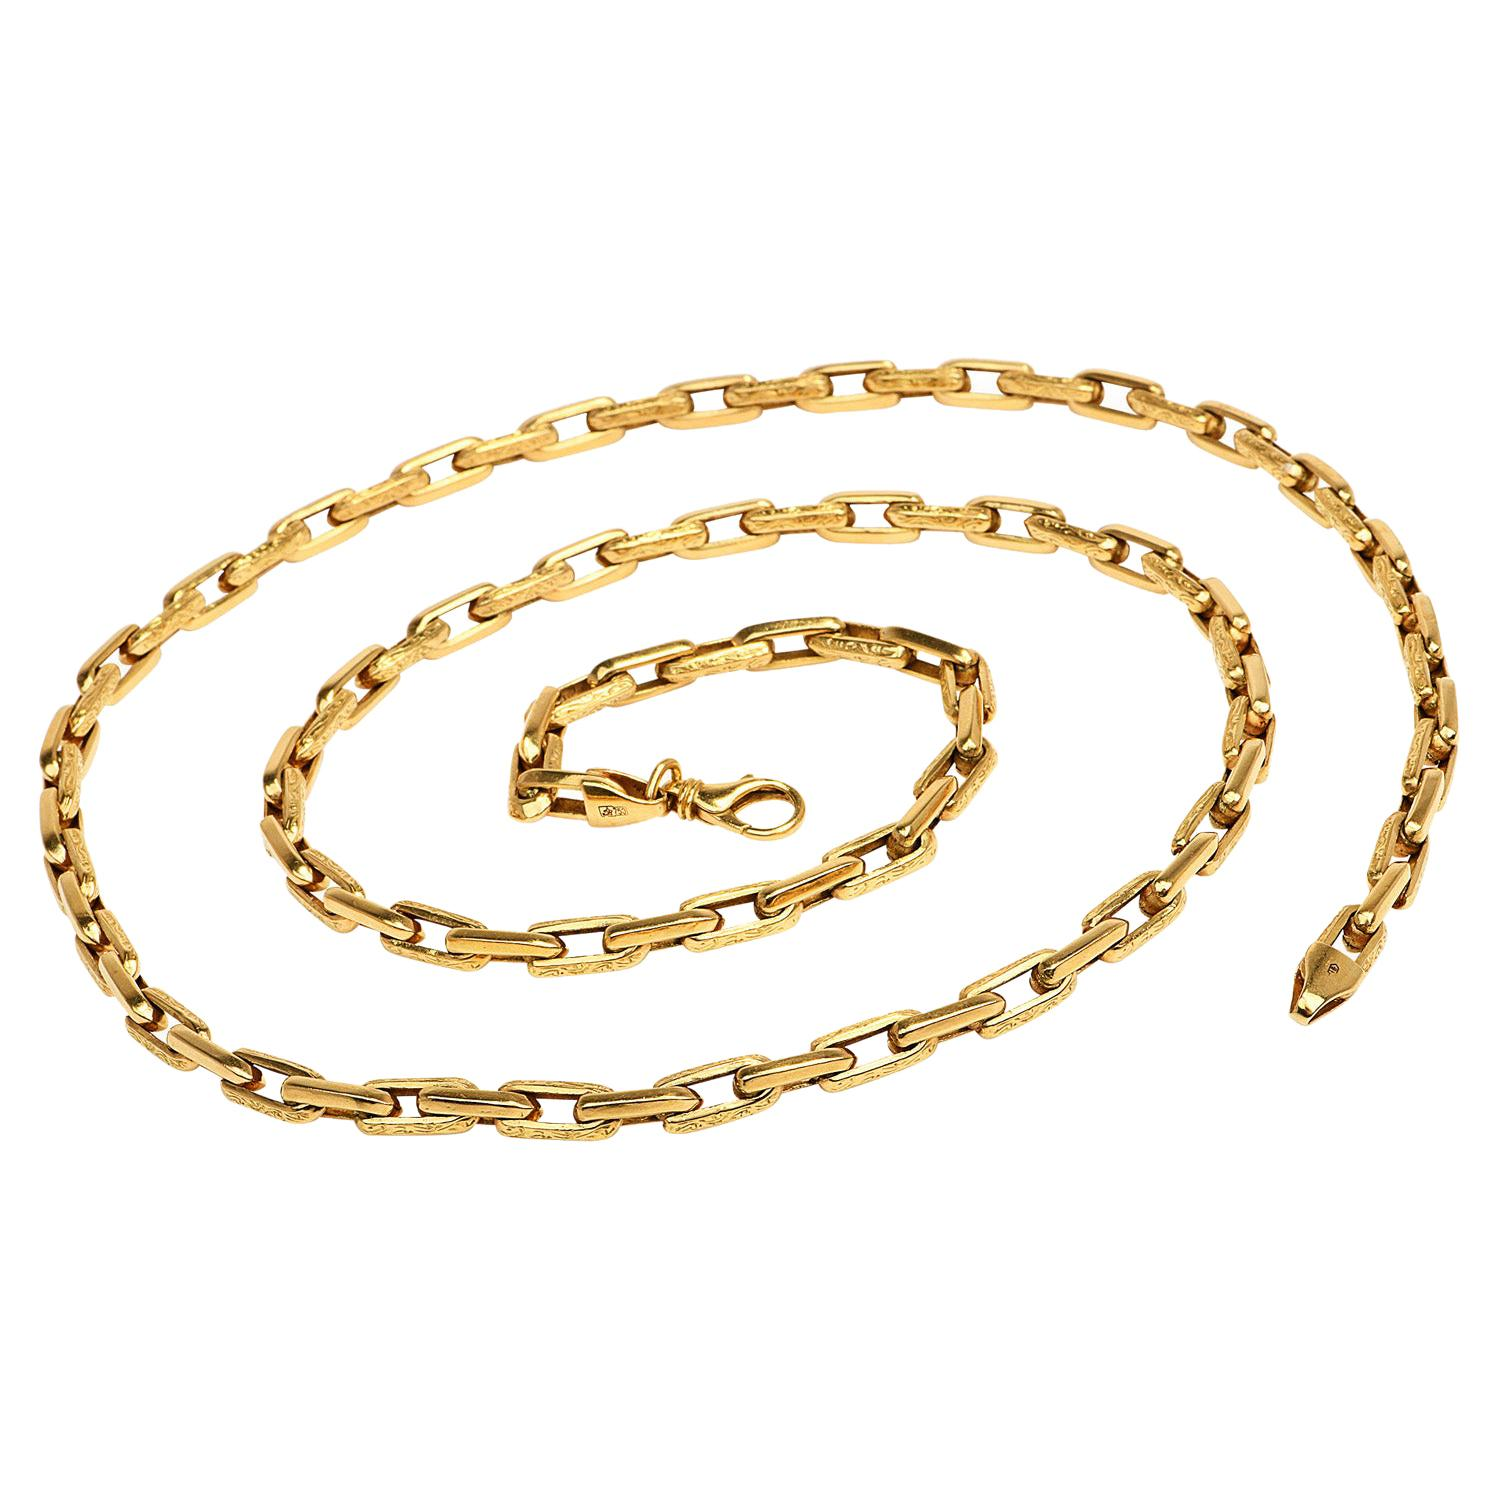 Vintage Italian 18K Yellow Gold Textured Oval Link Chain Necklace